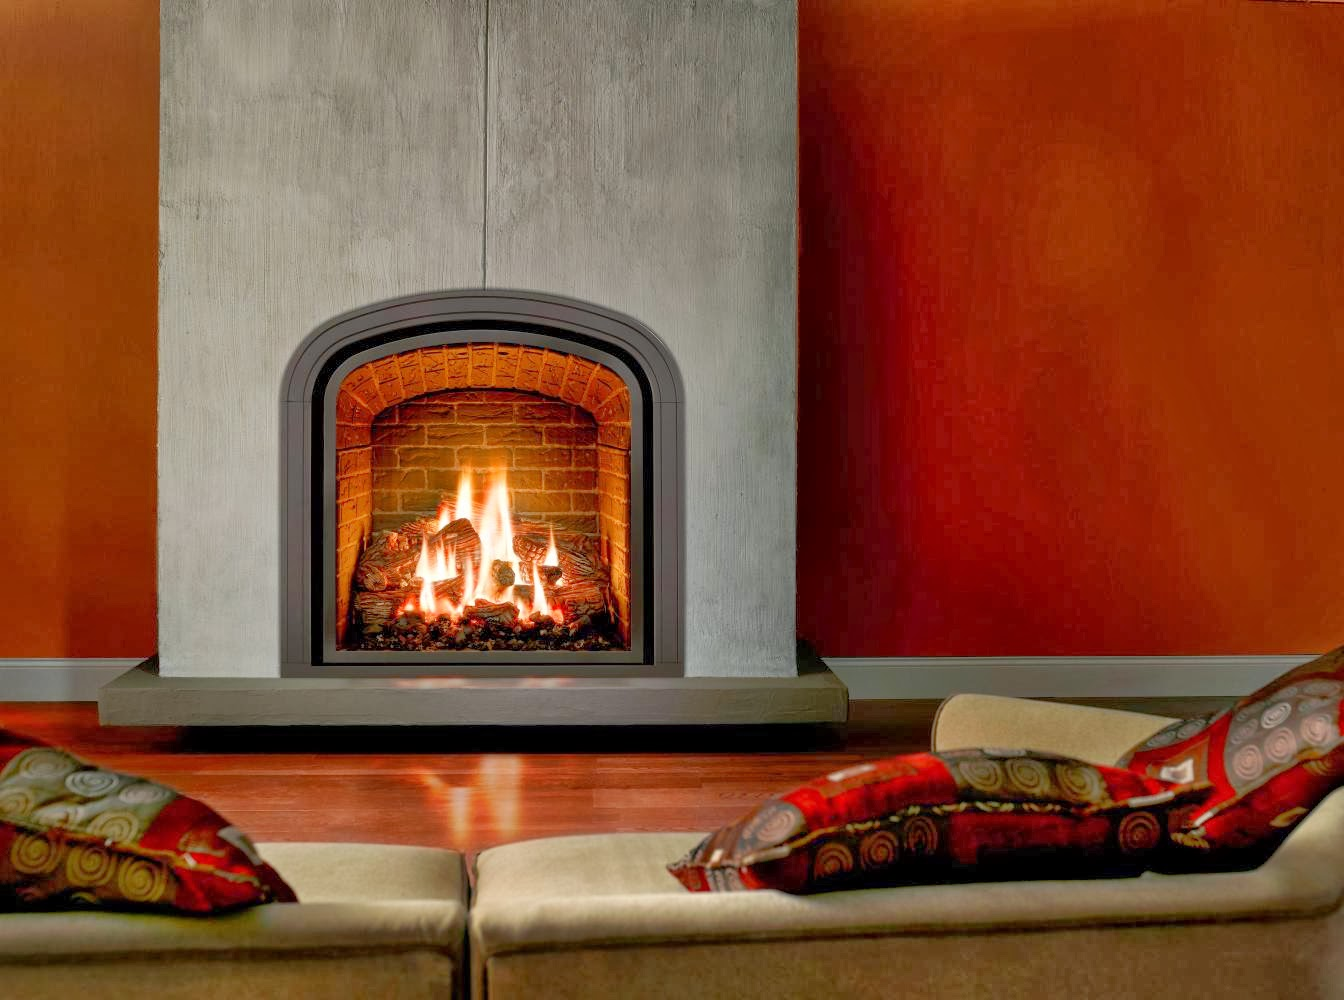 http://mendotahearth.com/fireplace-photo-gallery.php